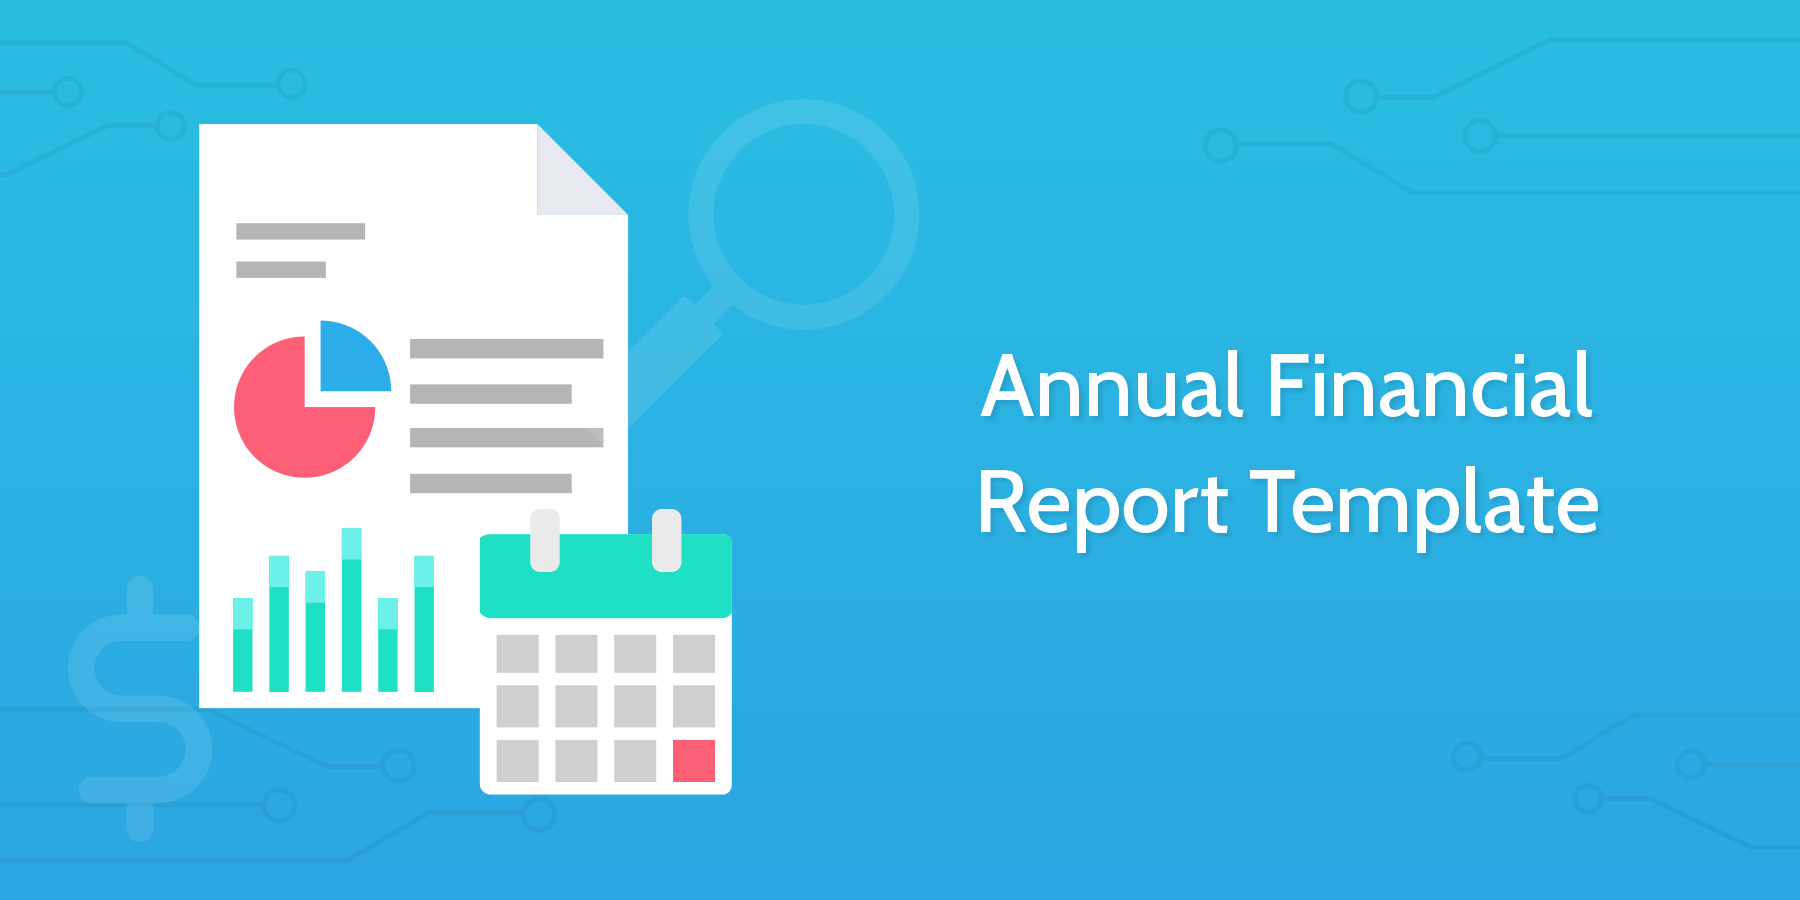 Annual Financial Report Template – Annual Financial Report Sample